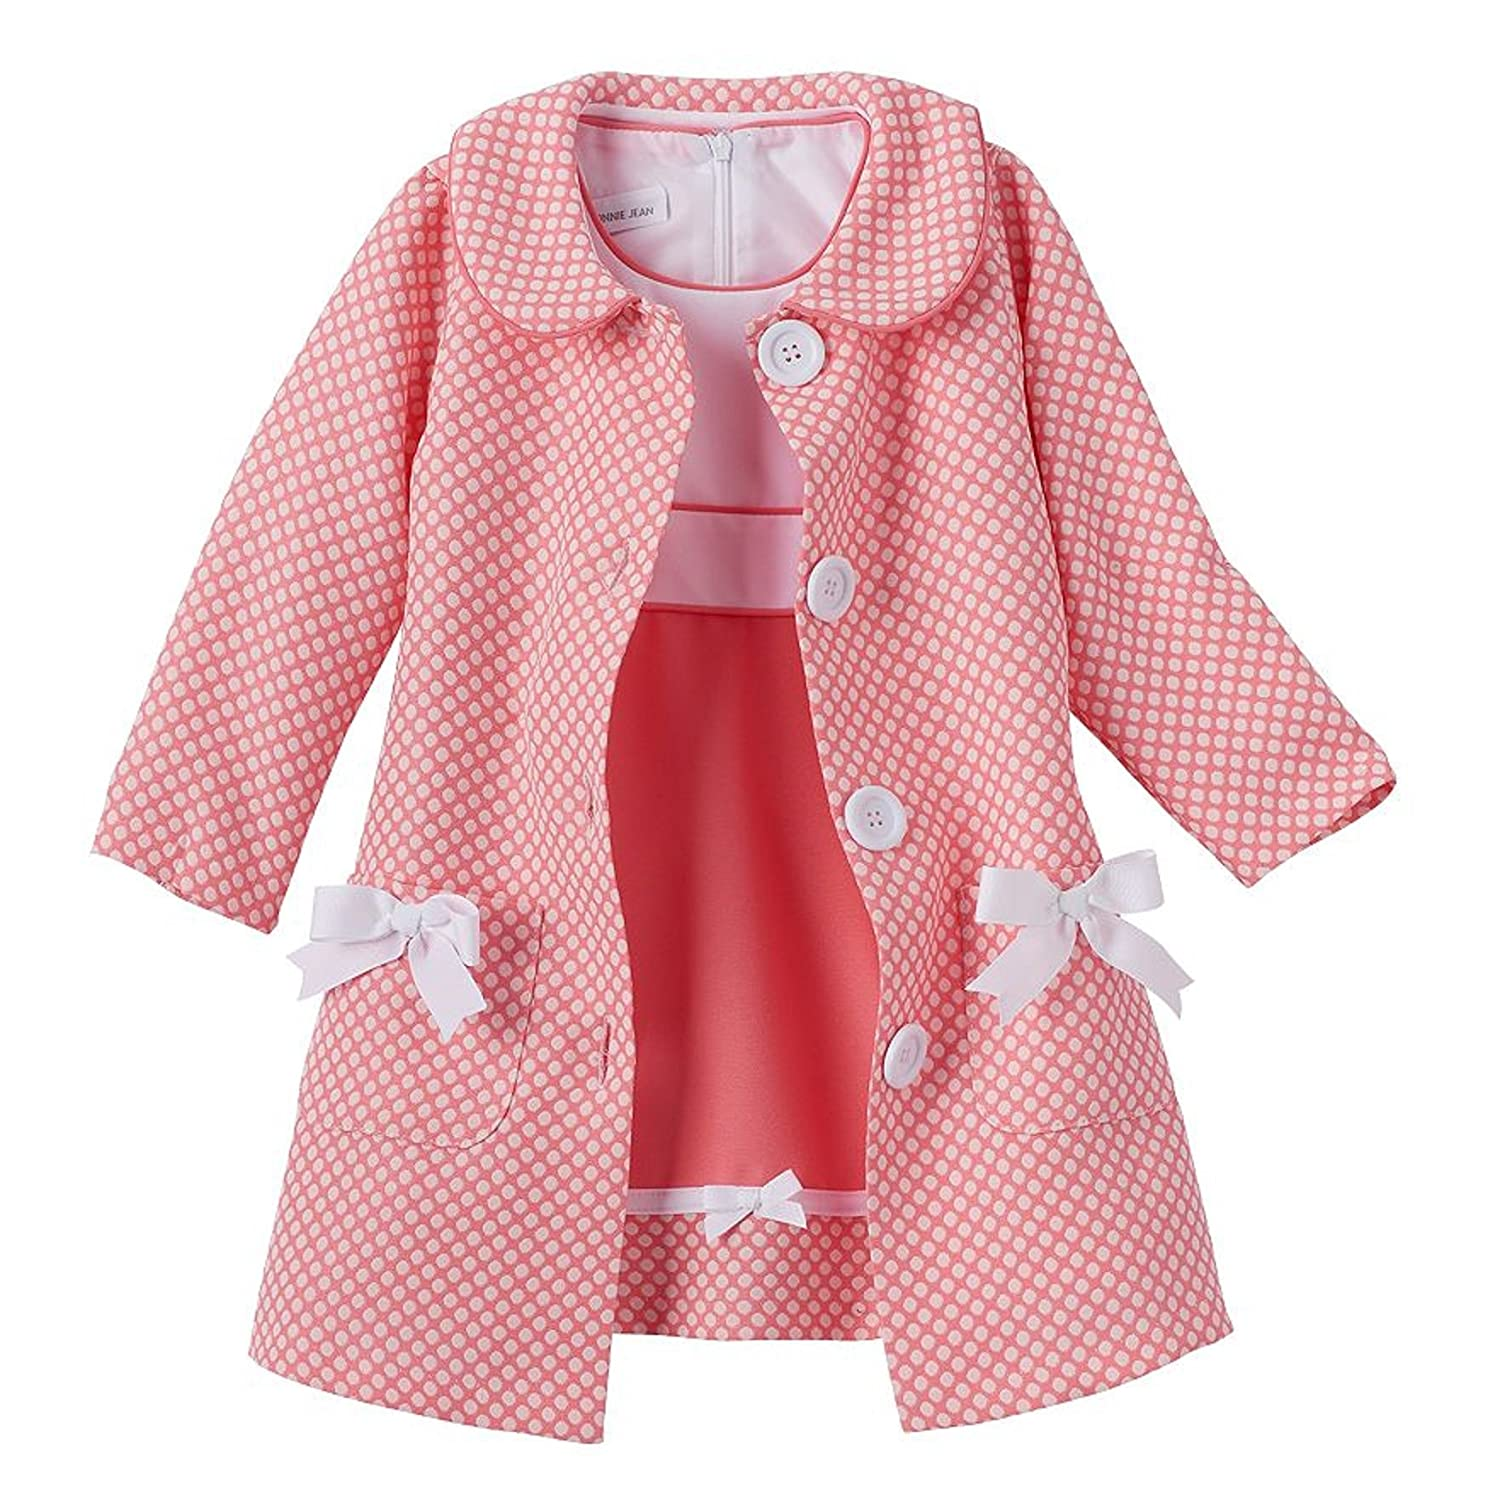 Amazon.com: Bonnie Jean Baby-Girls Houndstooth Coat and Dress Set ...